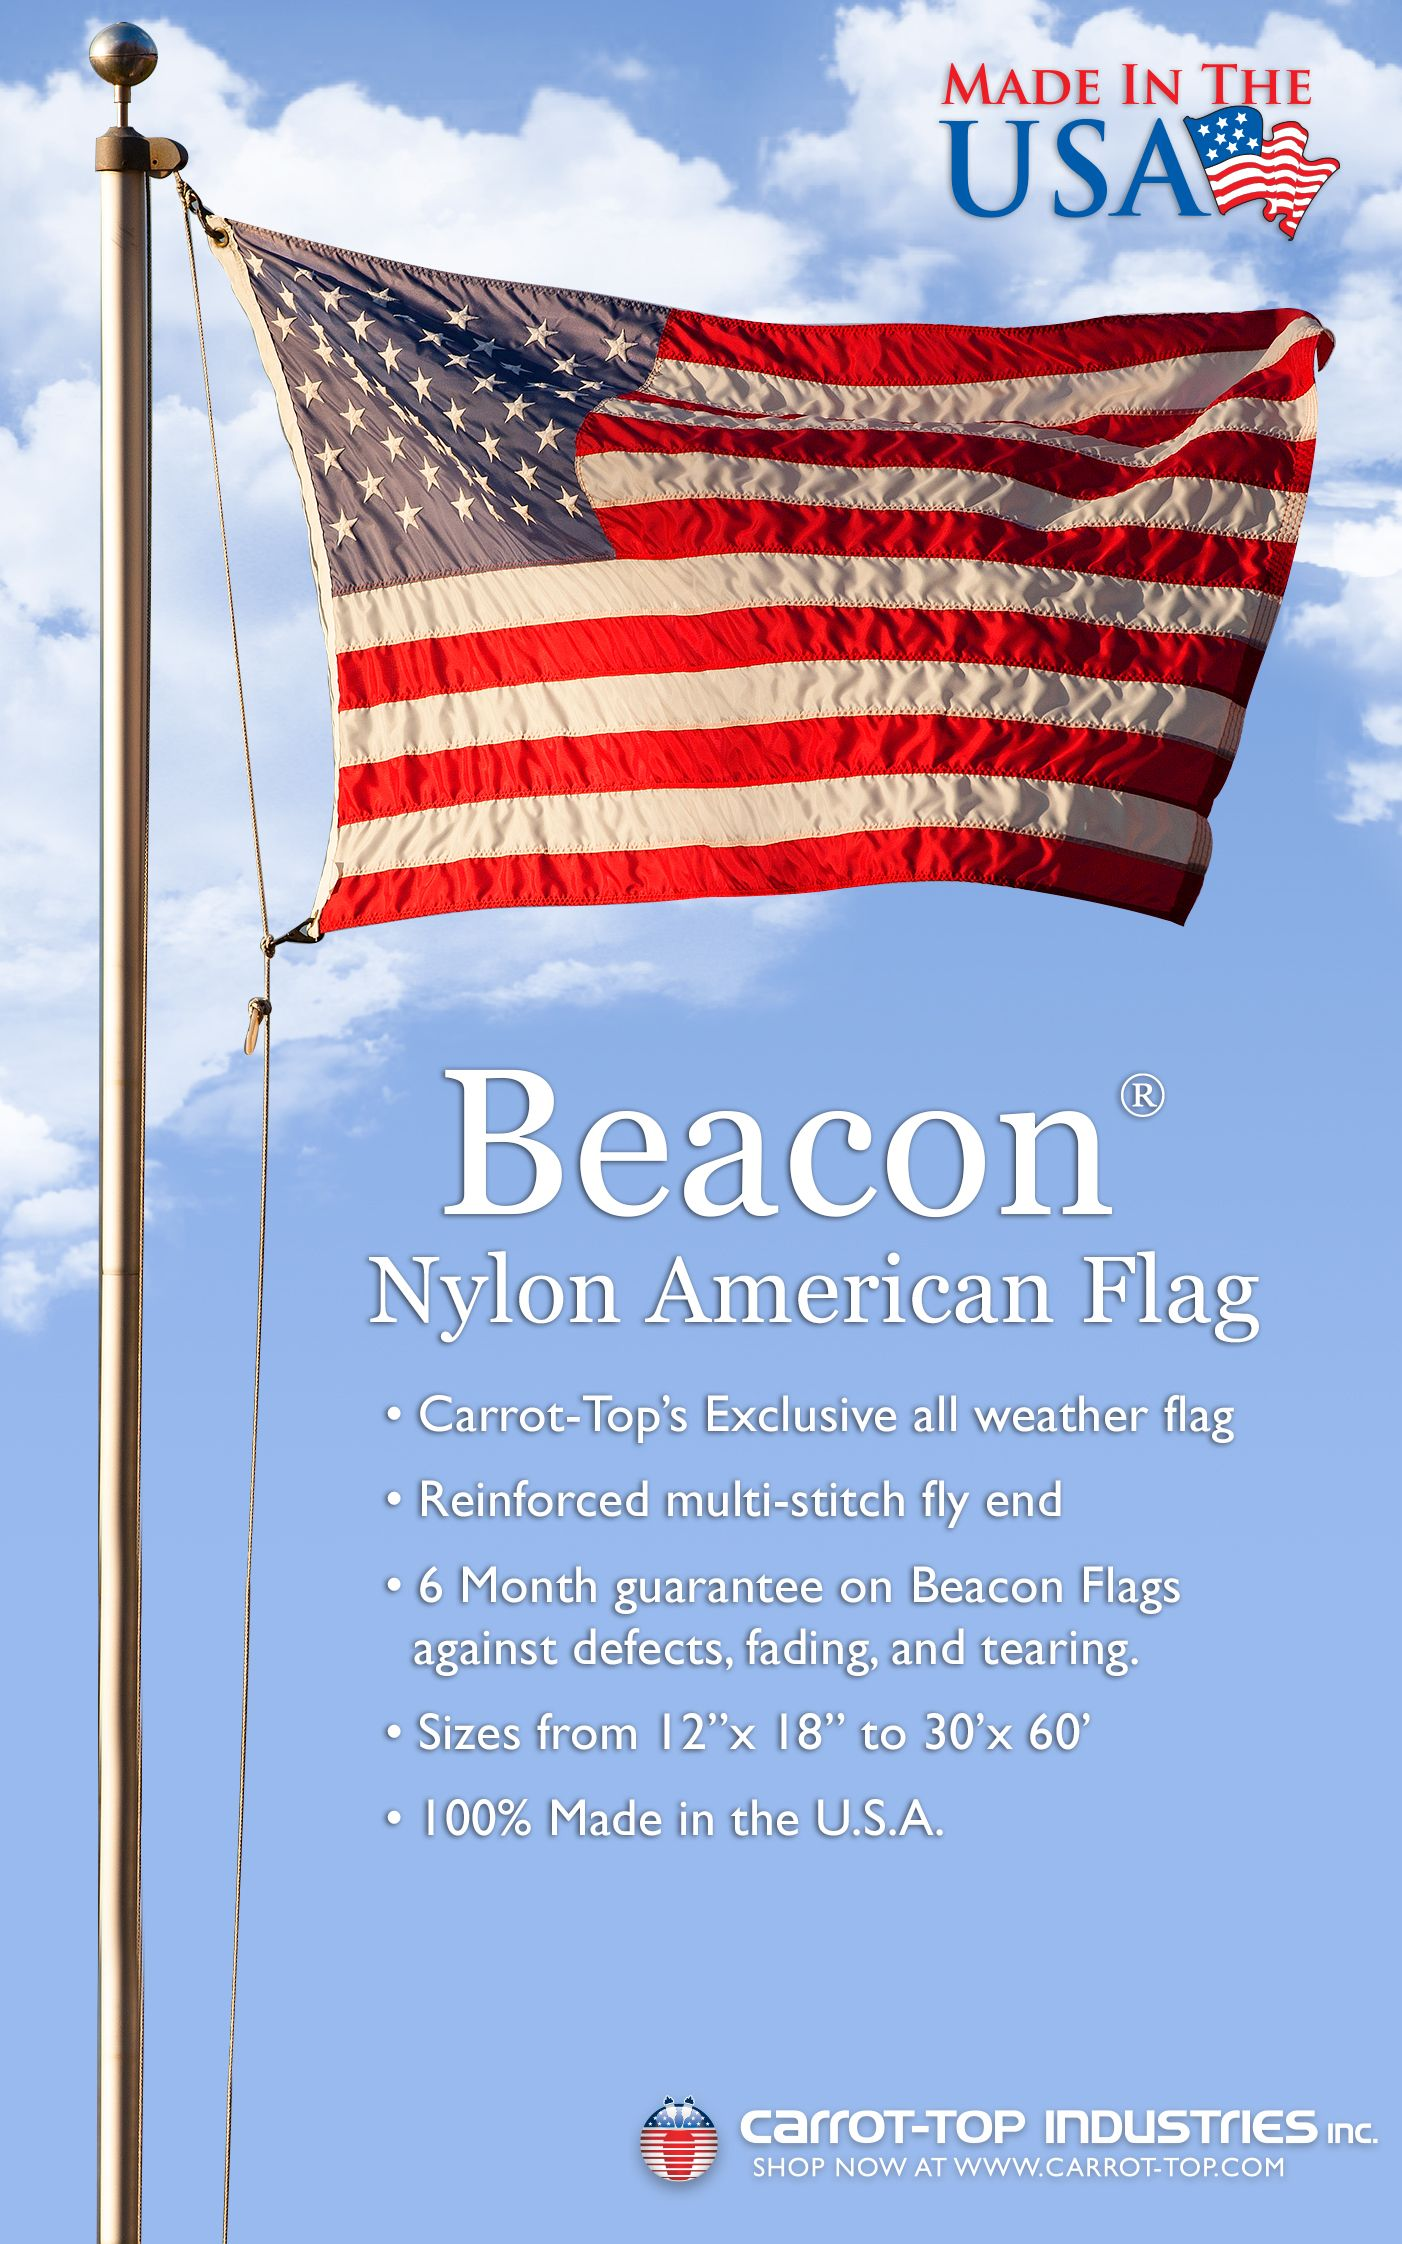 380170c4164 Made in the usa durable all weather nylon beacon american flag jpg  1402x2244 Beacon flags